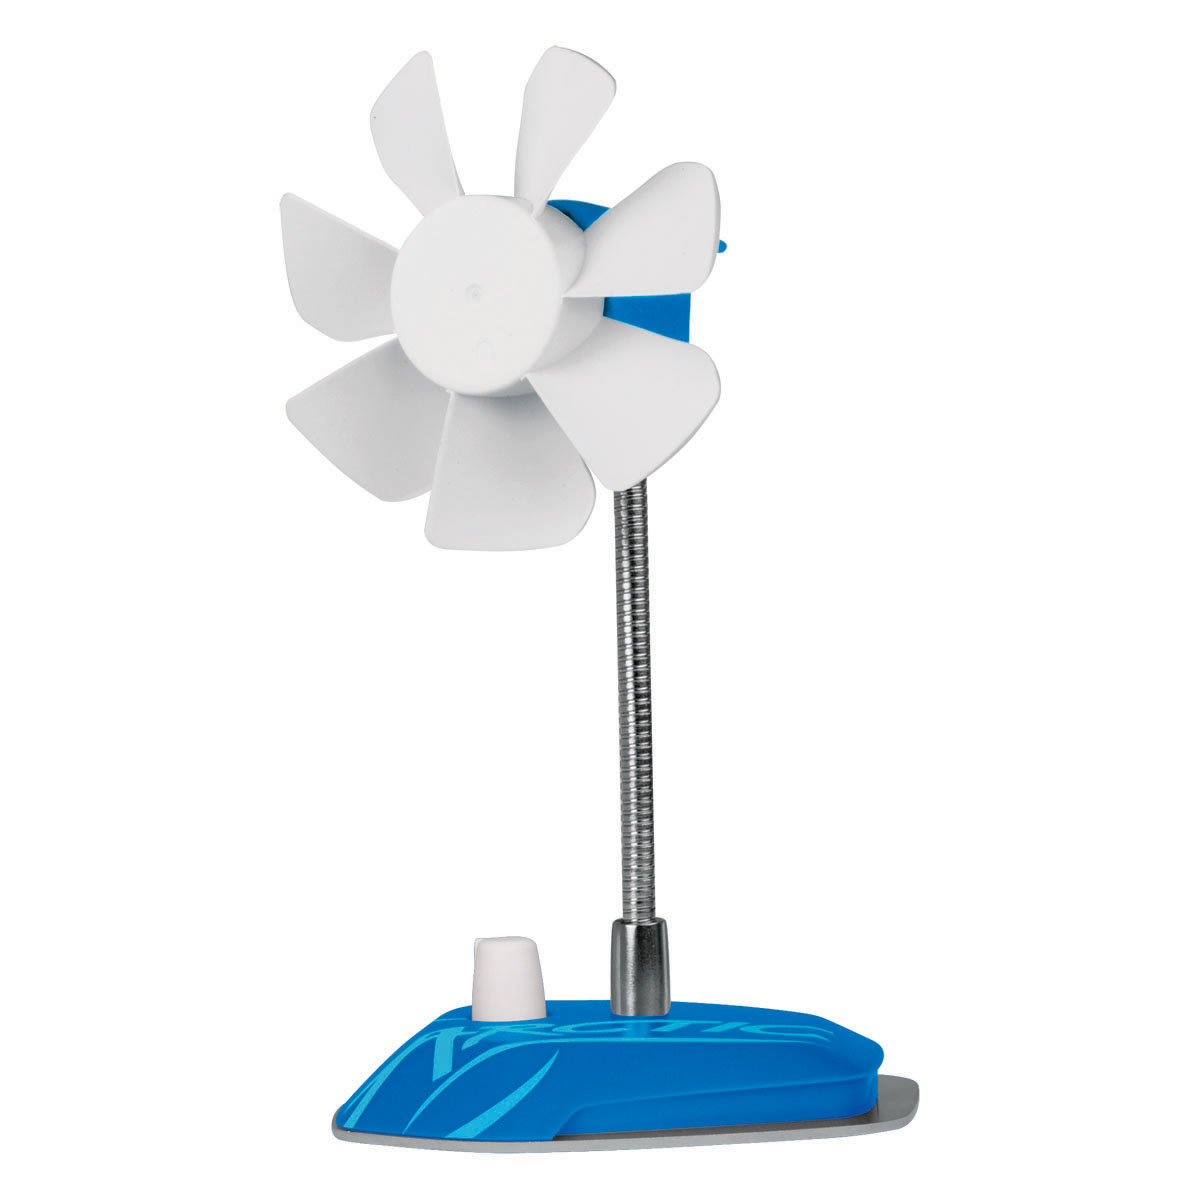 AEBRZ00020A ARCTIC Breeze Color Edition BLUE - USB desktop fan